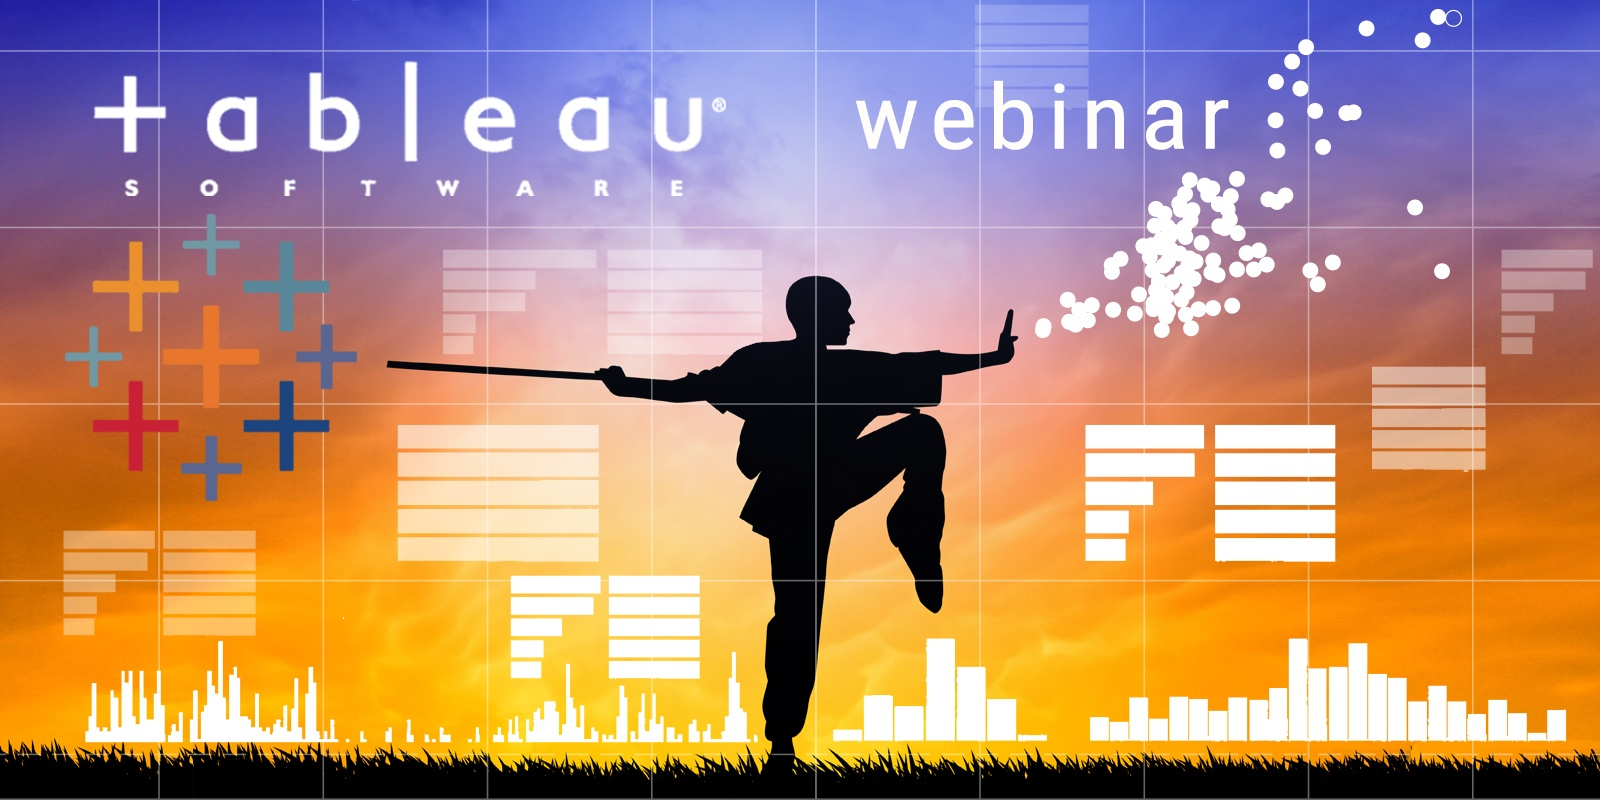 Teknion Webinar:Exciting New Features in Tableau and Tableau Prep!